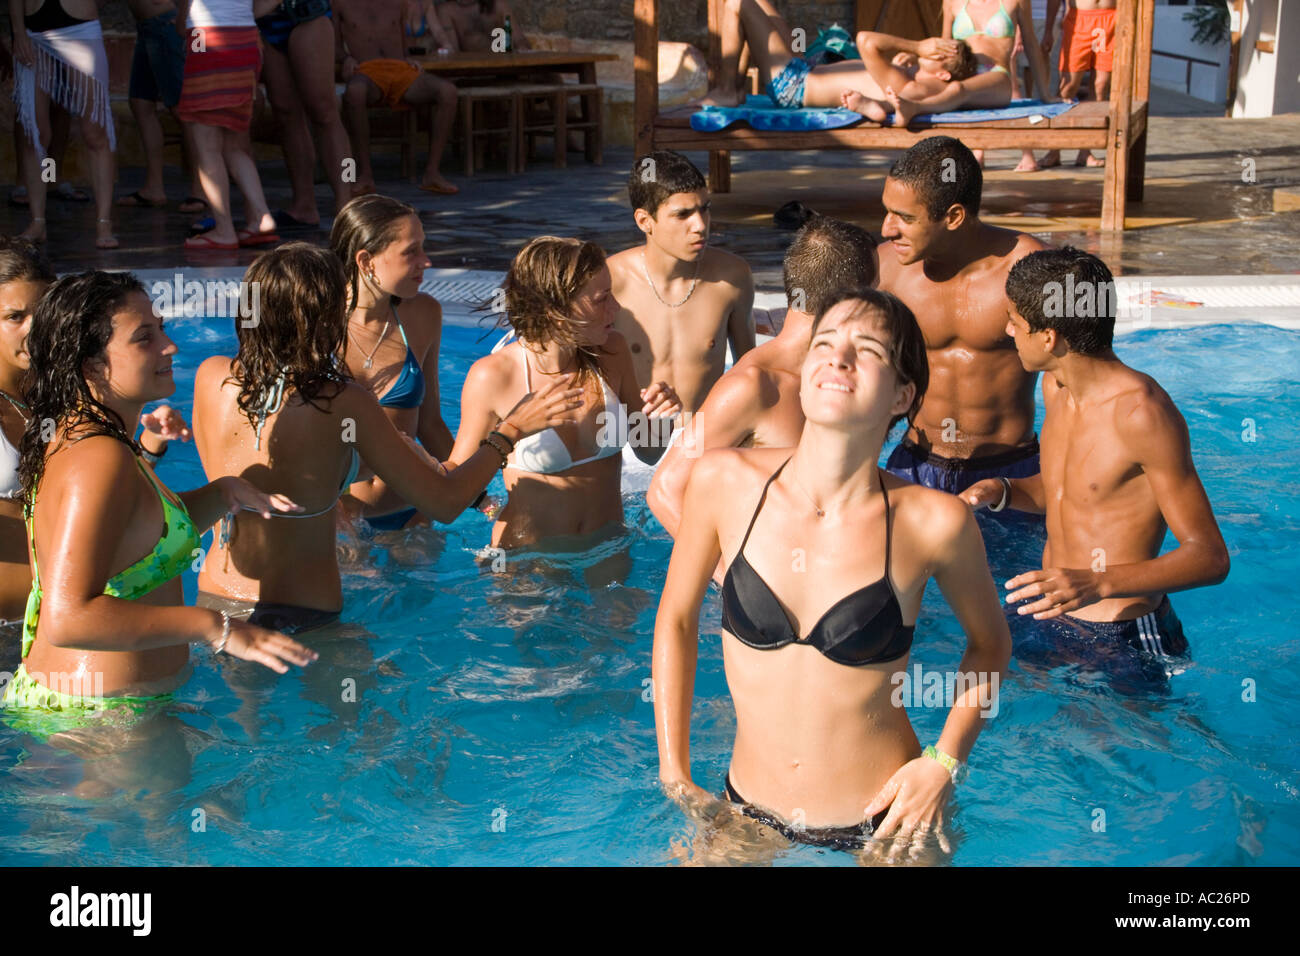 Best Island Beaches For Partying Mykonos St Barts: Young People Dancing During A Beach Party In A Pool Of The